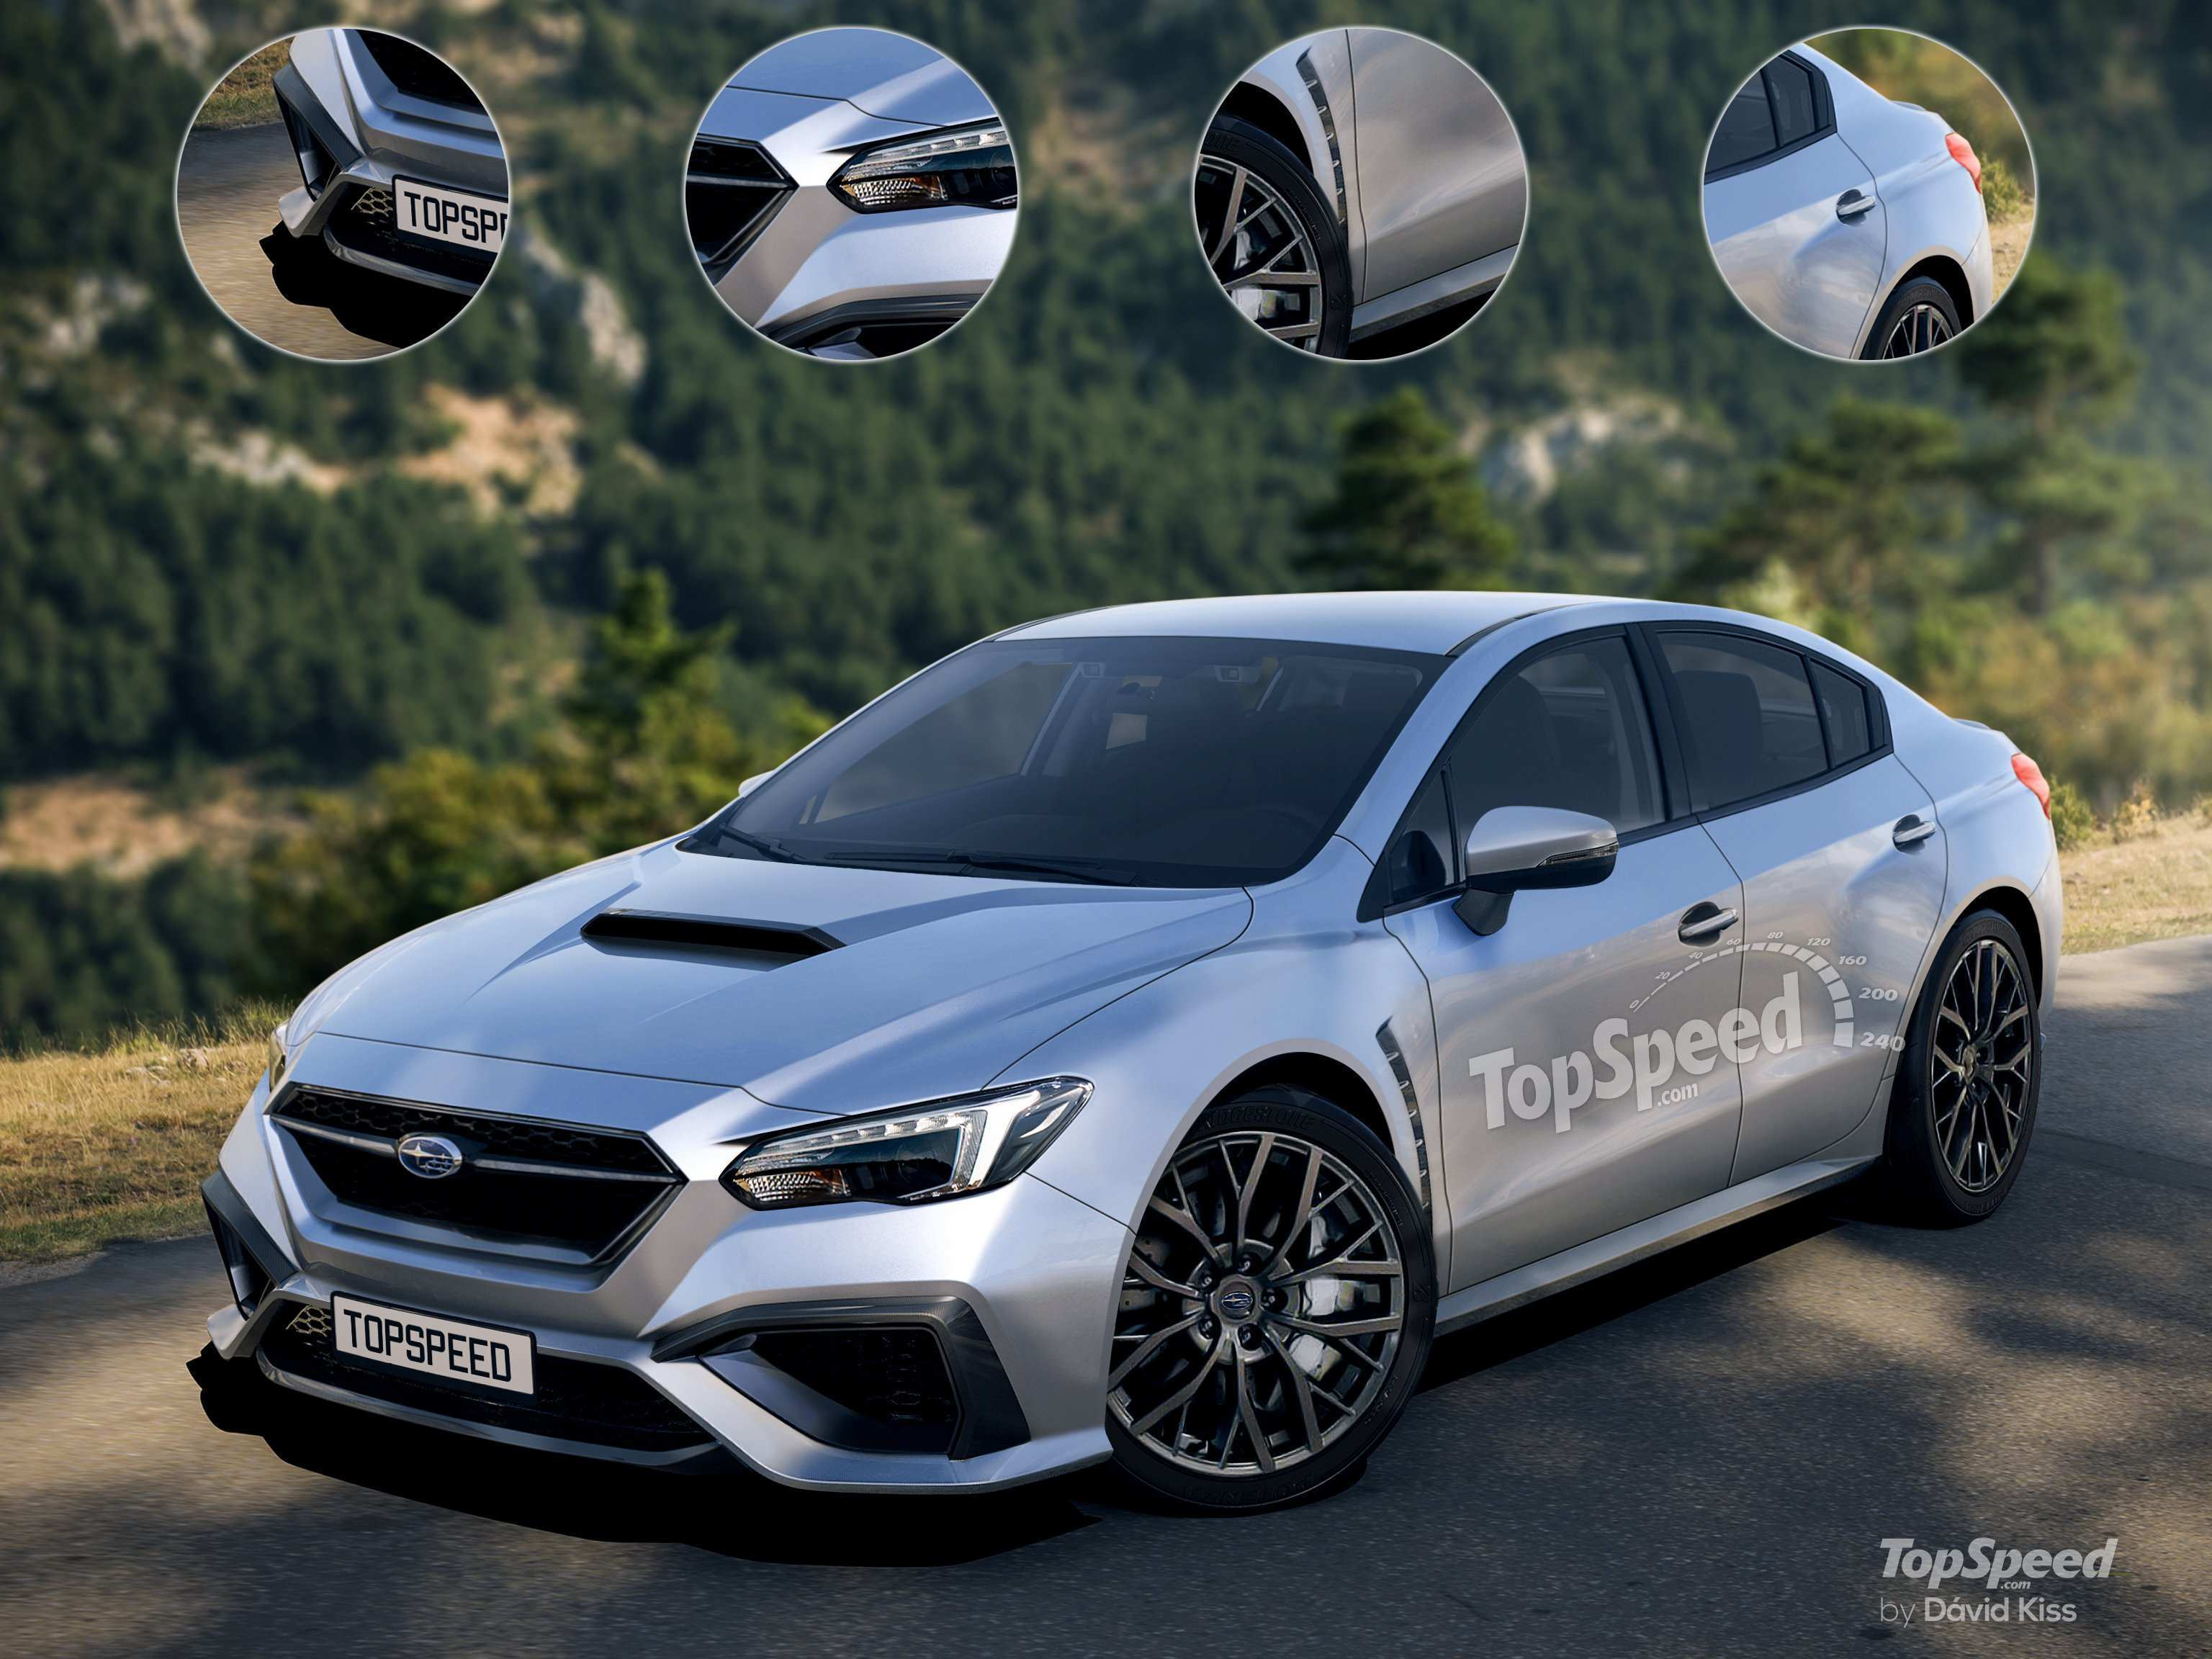 85 New Subaru Wrx Wagon 2020 Concept by Subaru Wrx Wagon 2020